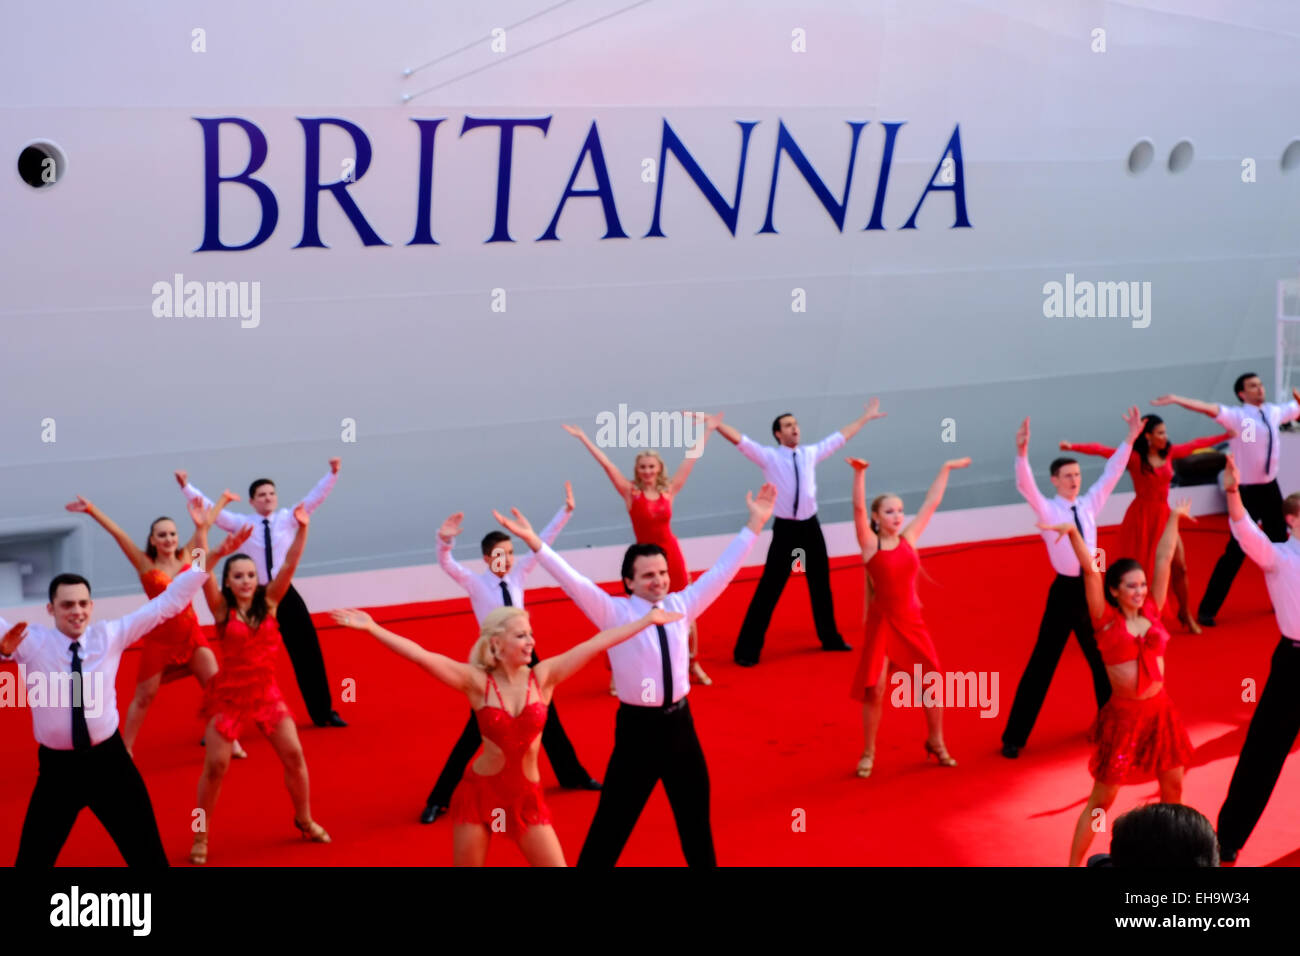 Southampton, UK. 10th March, 2015. Dancers at the naming P&O cruises new flagship BRITANNIA Credit:  Paul Chambers/Alamy Stock Photo